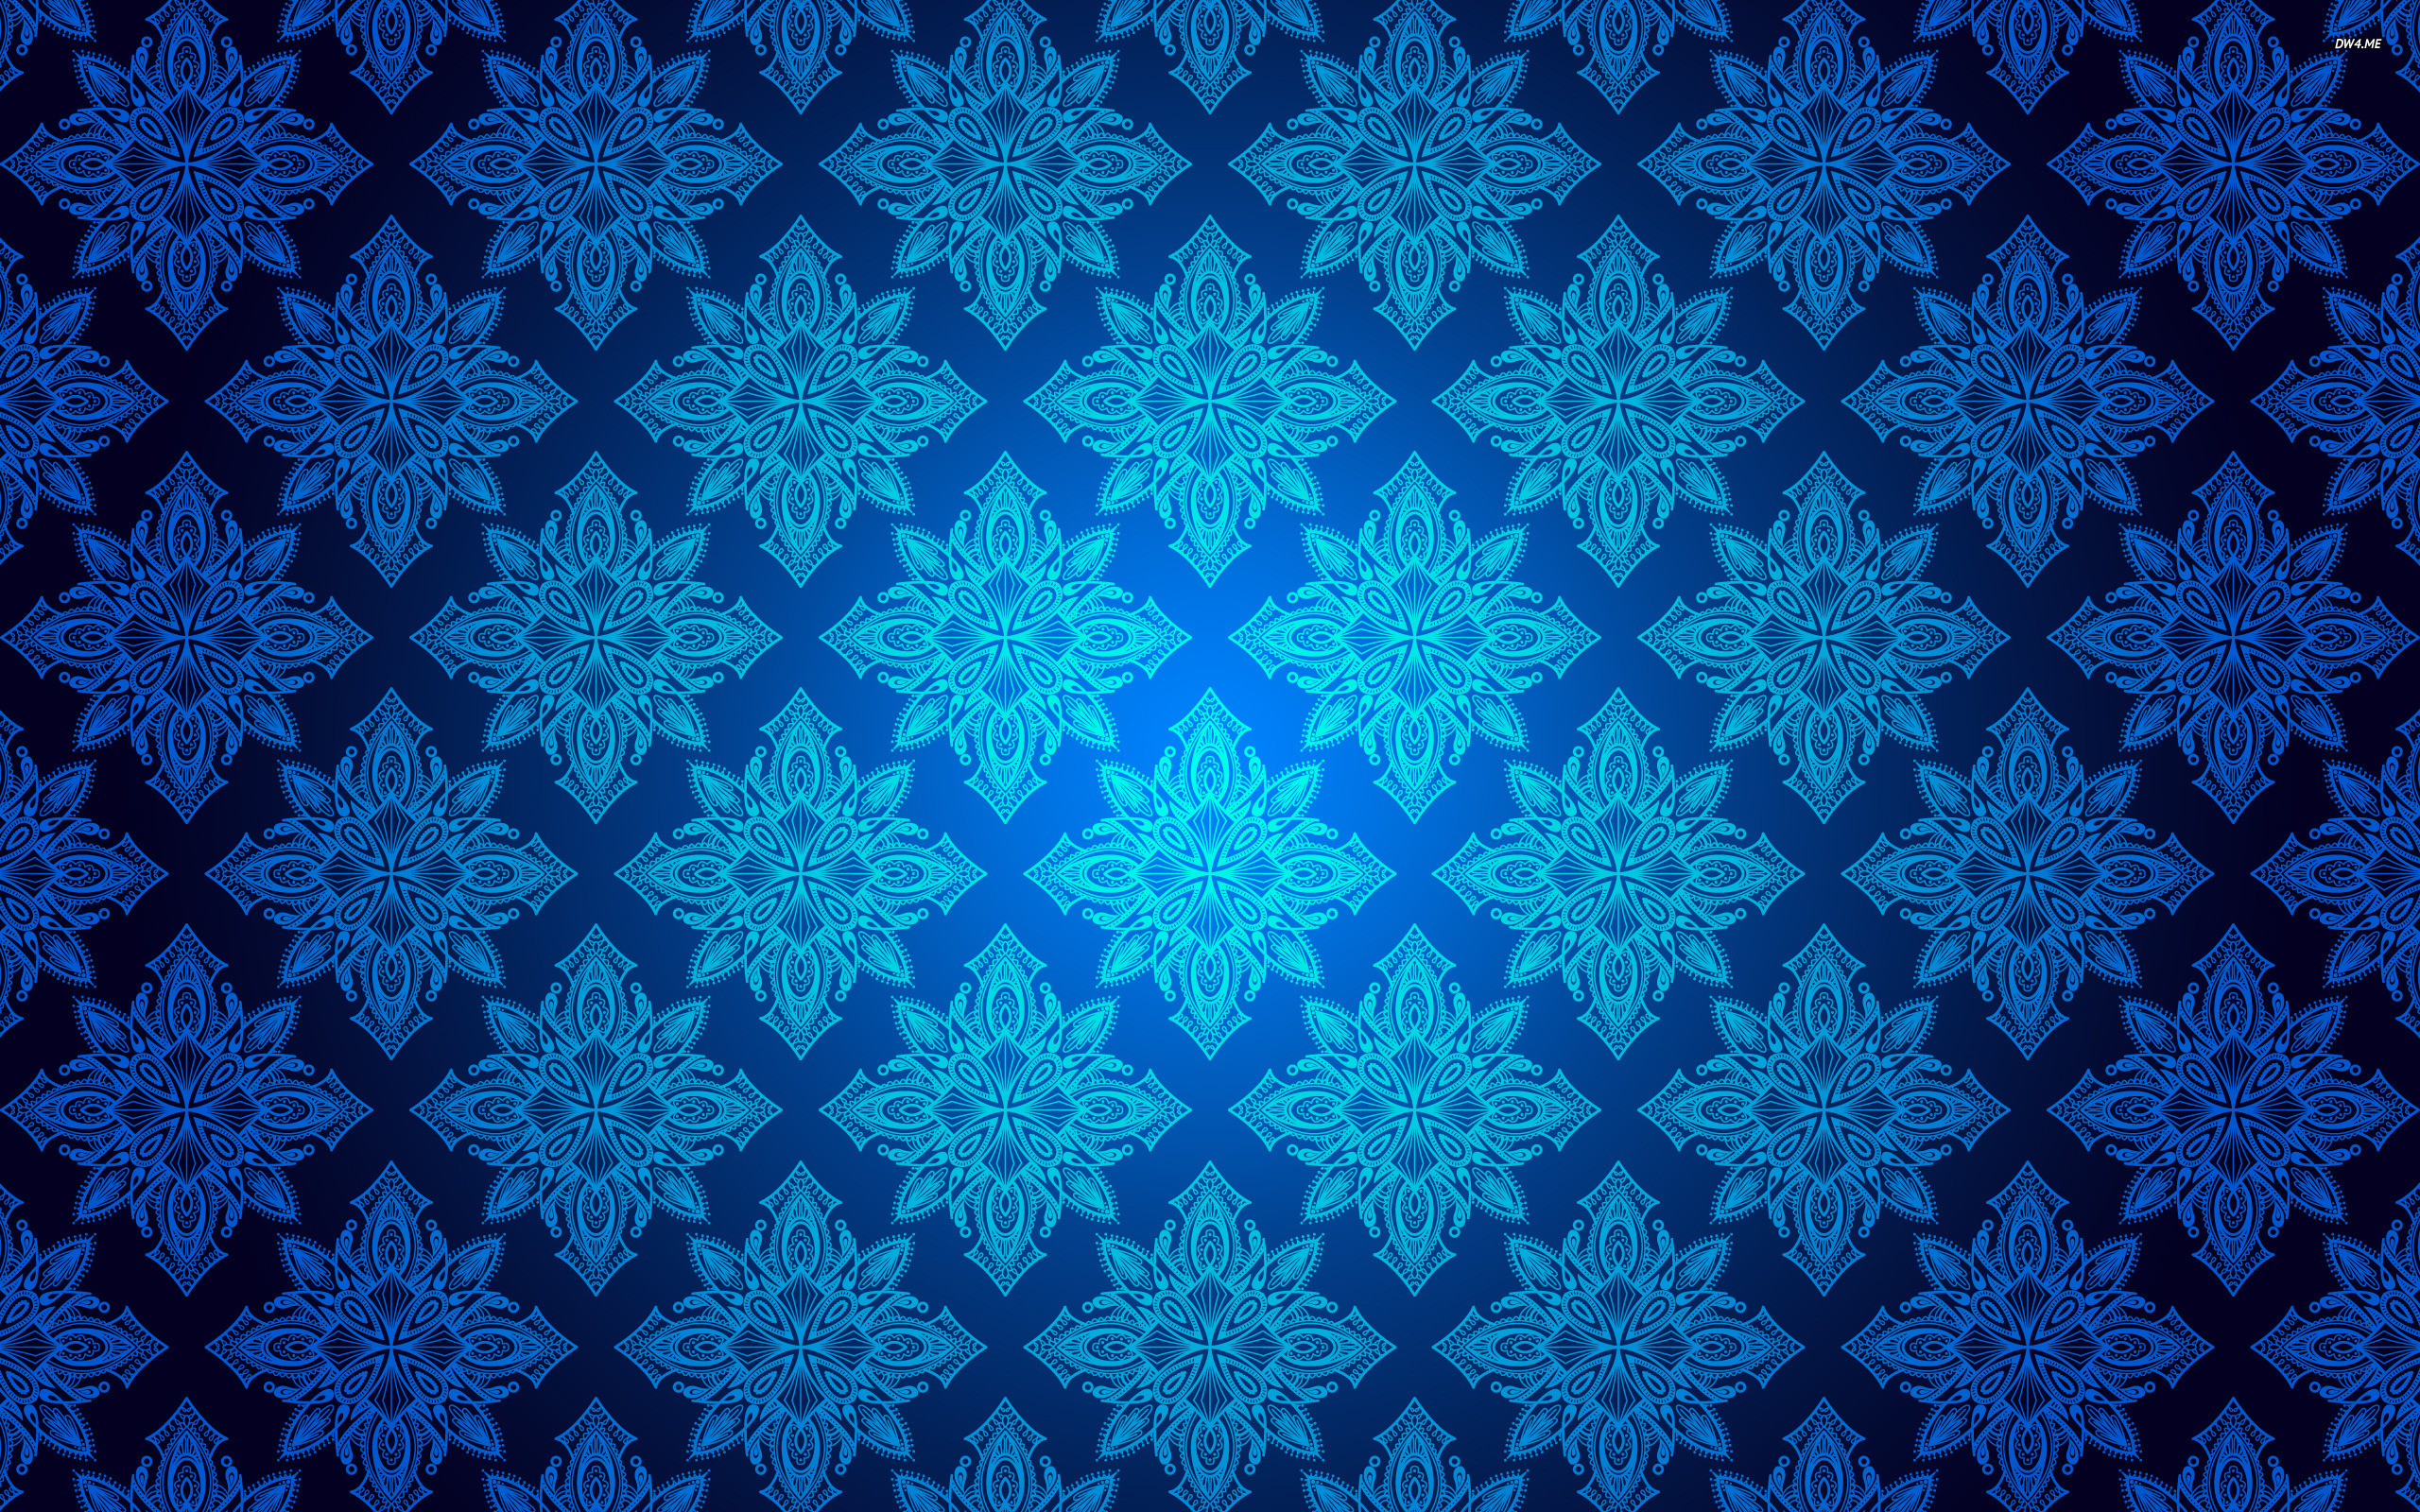 royal blue and gold wallpaper blue and gold patterns navy blue and 2560x1600